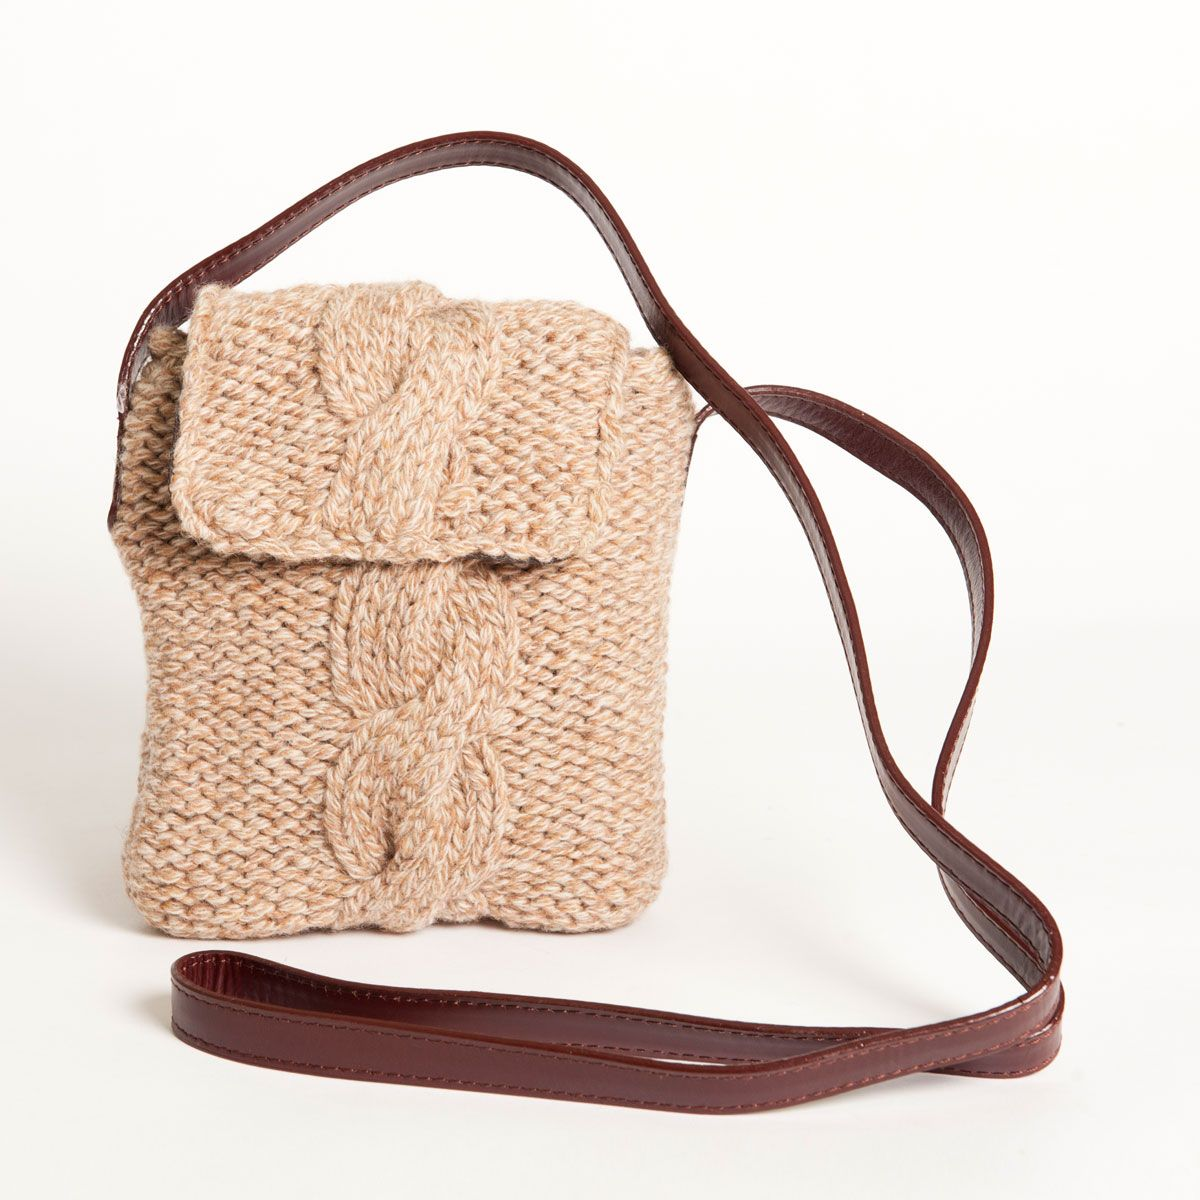 wool cable knit sling bag | The Bag Lady | Pinterest | Bag